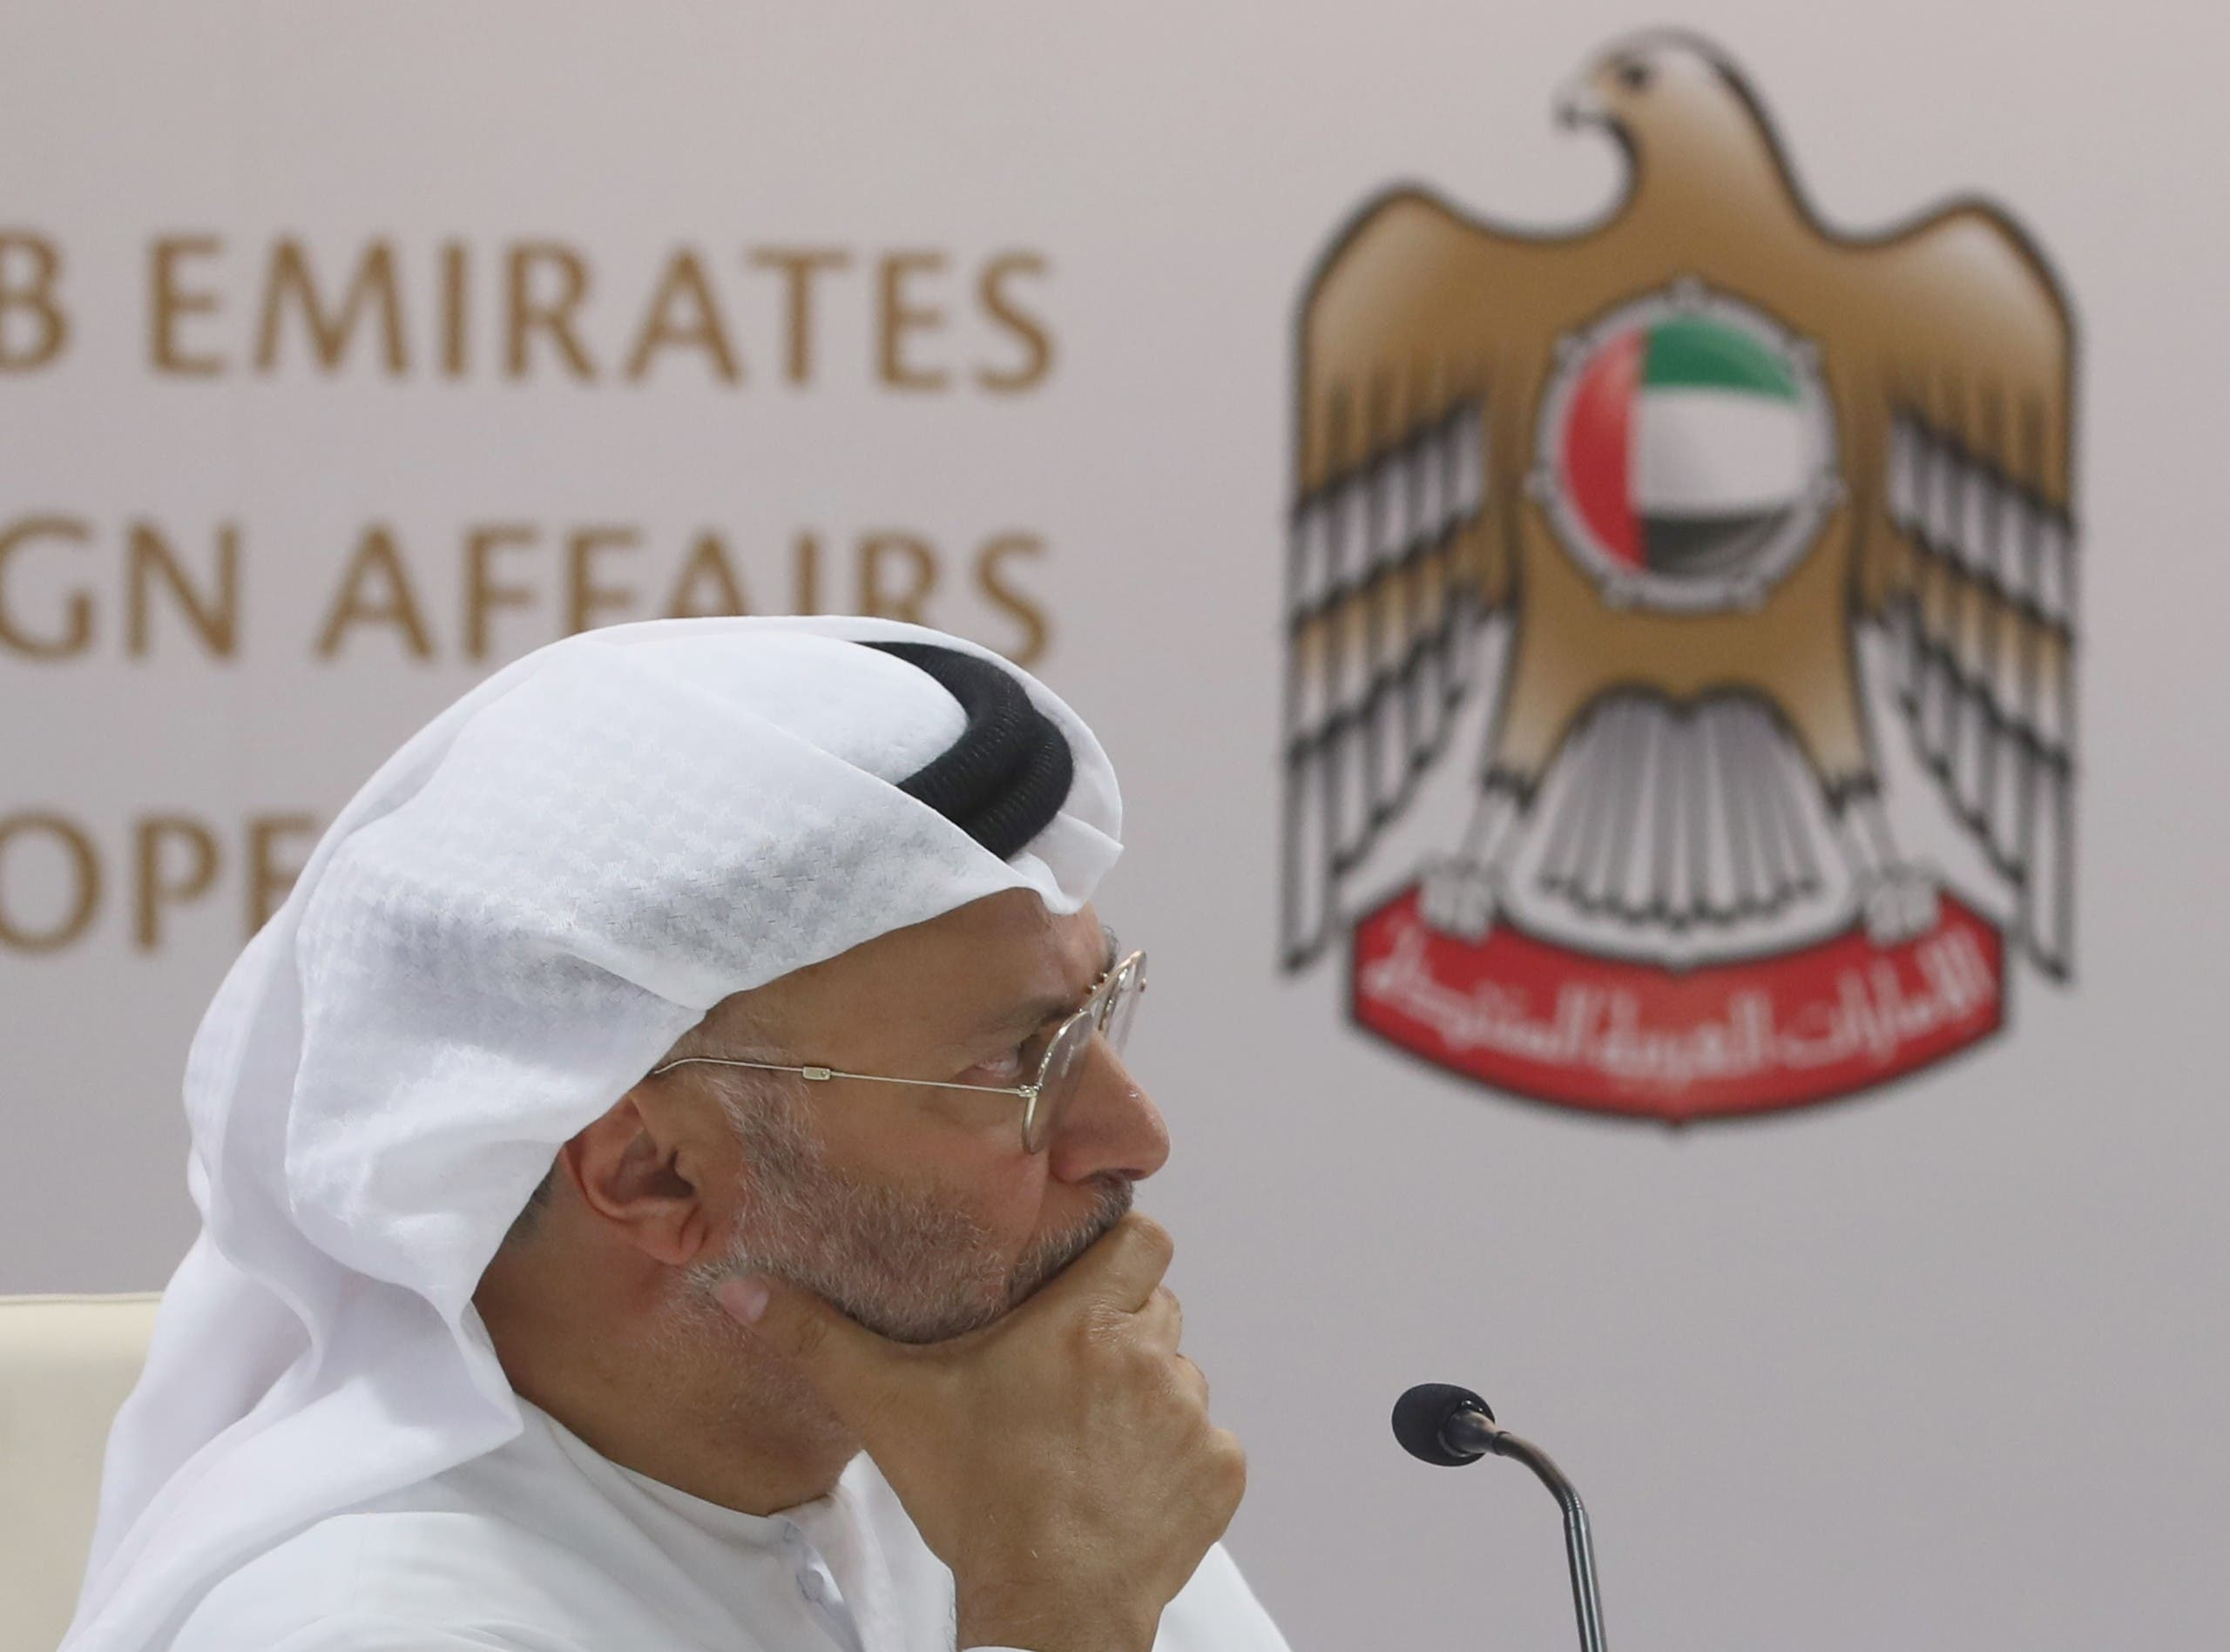 UAE Minister of State for Foreign Affairs, Anwar Gargash at a conference in Dubai on August 13, 2018. (AFP)